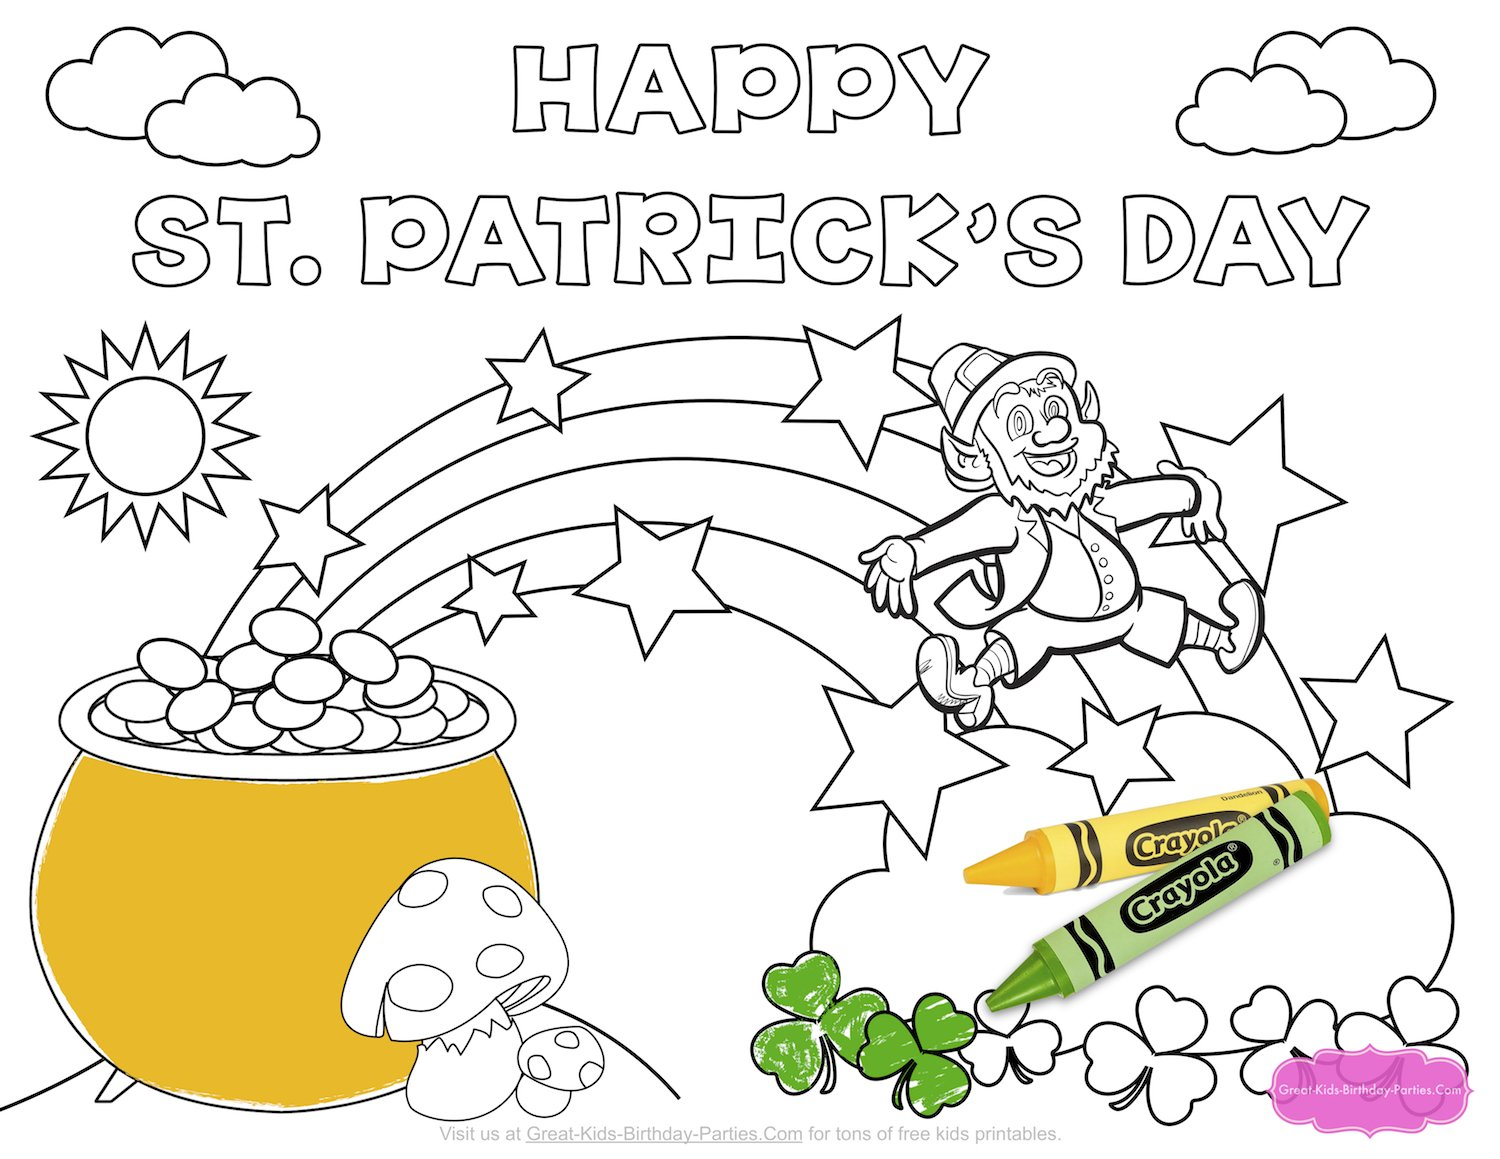 great kids birthday parties ; xst-patricks-day-coloring-page-2